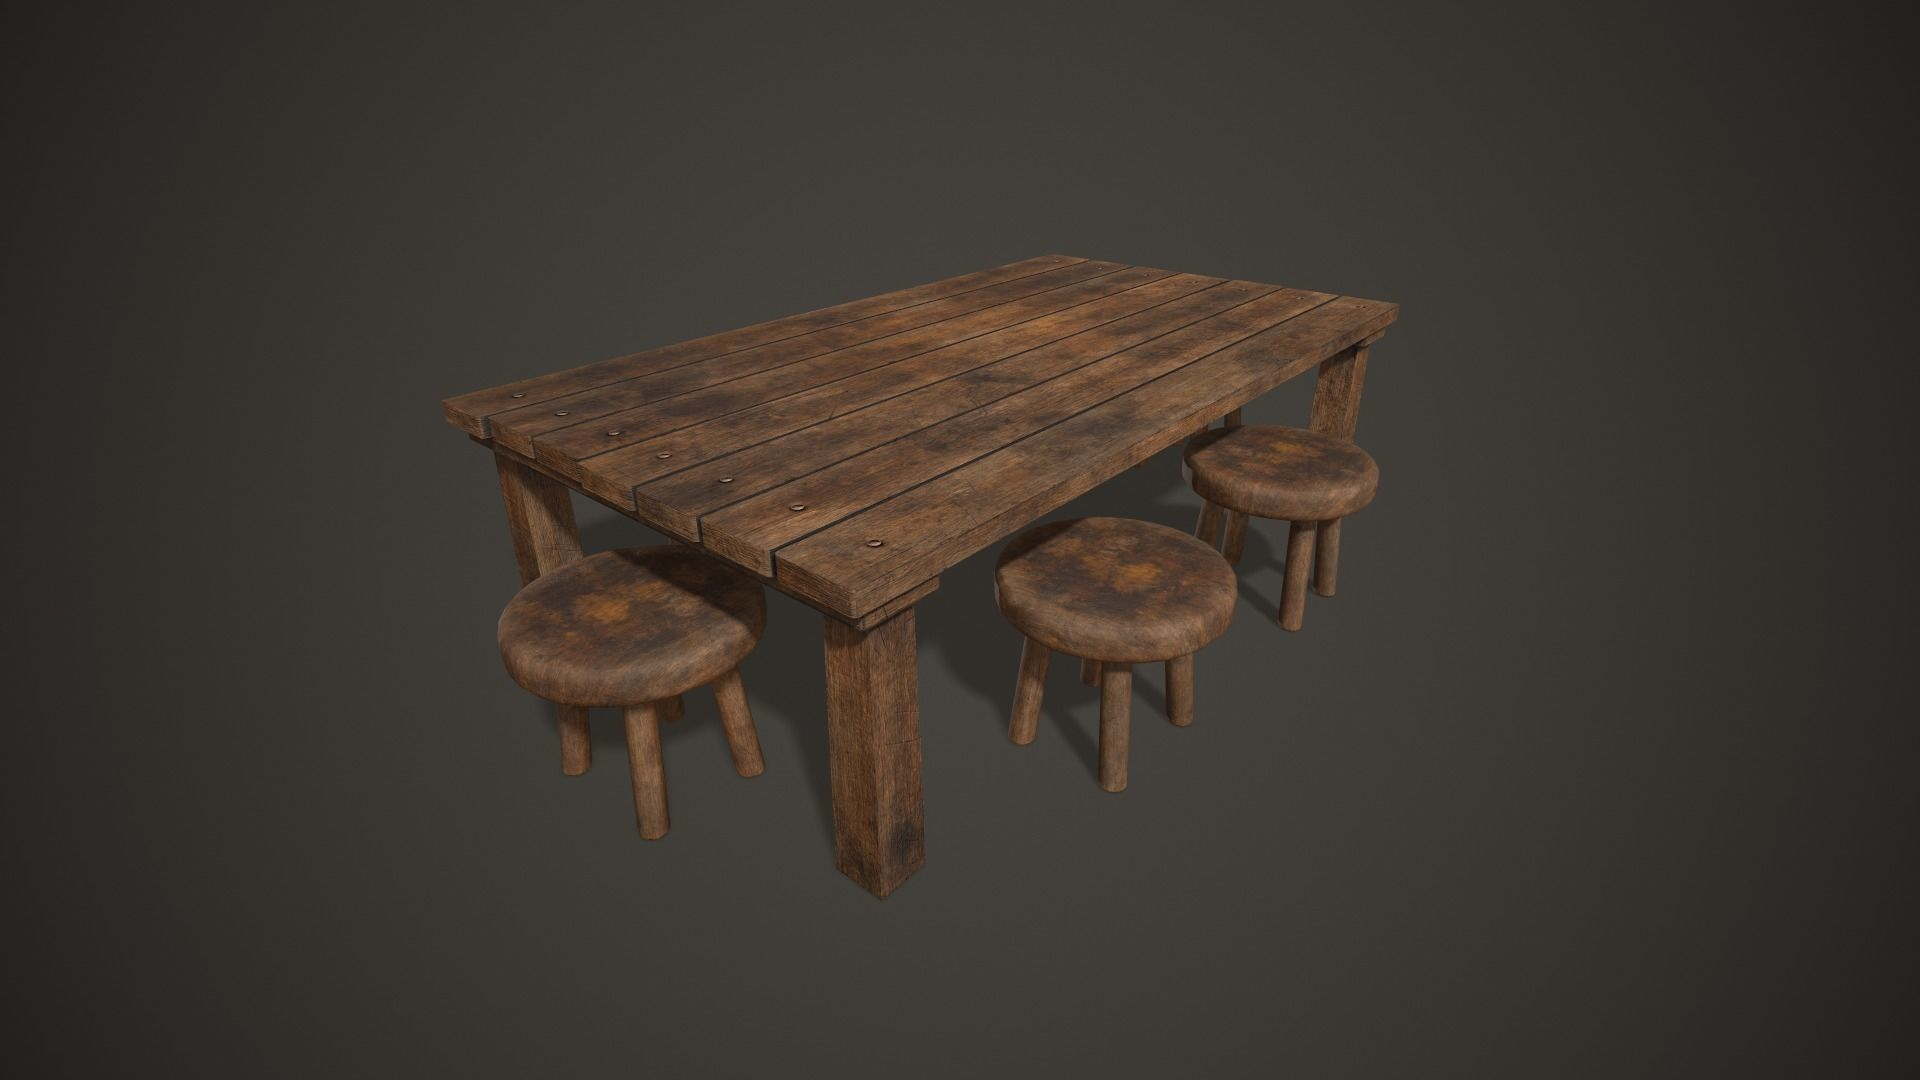 Wooden Tavern Table and Chairs